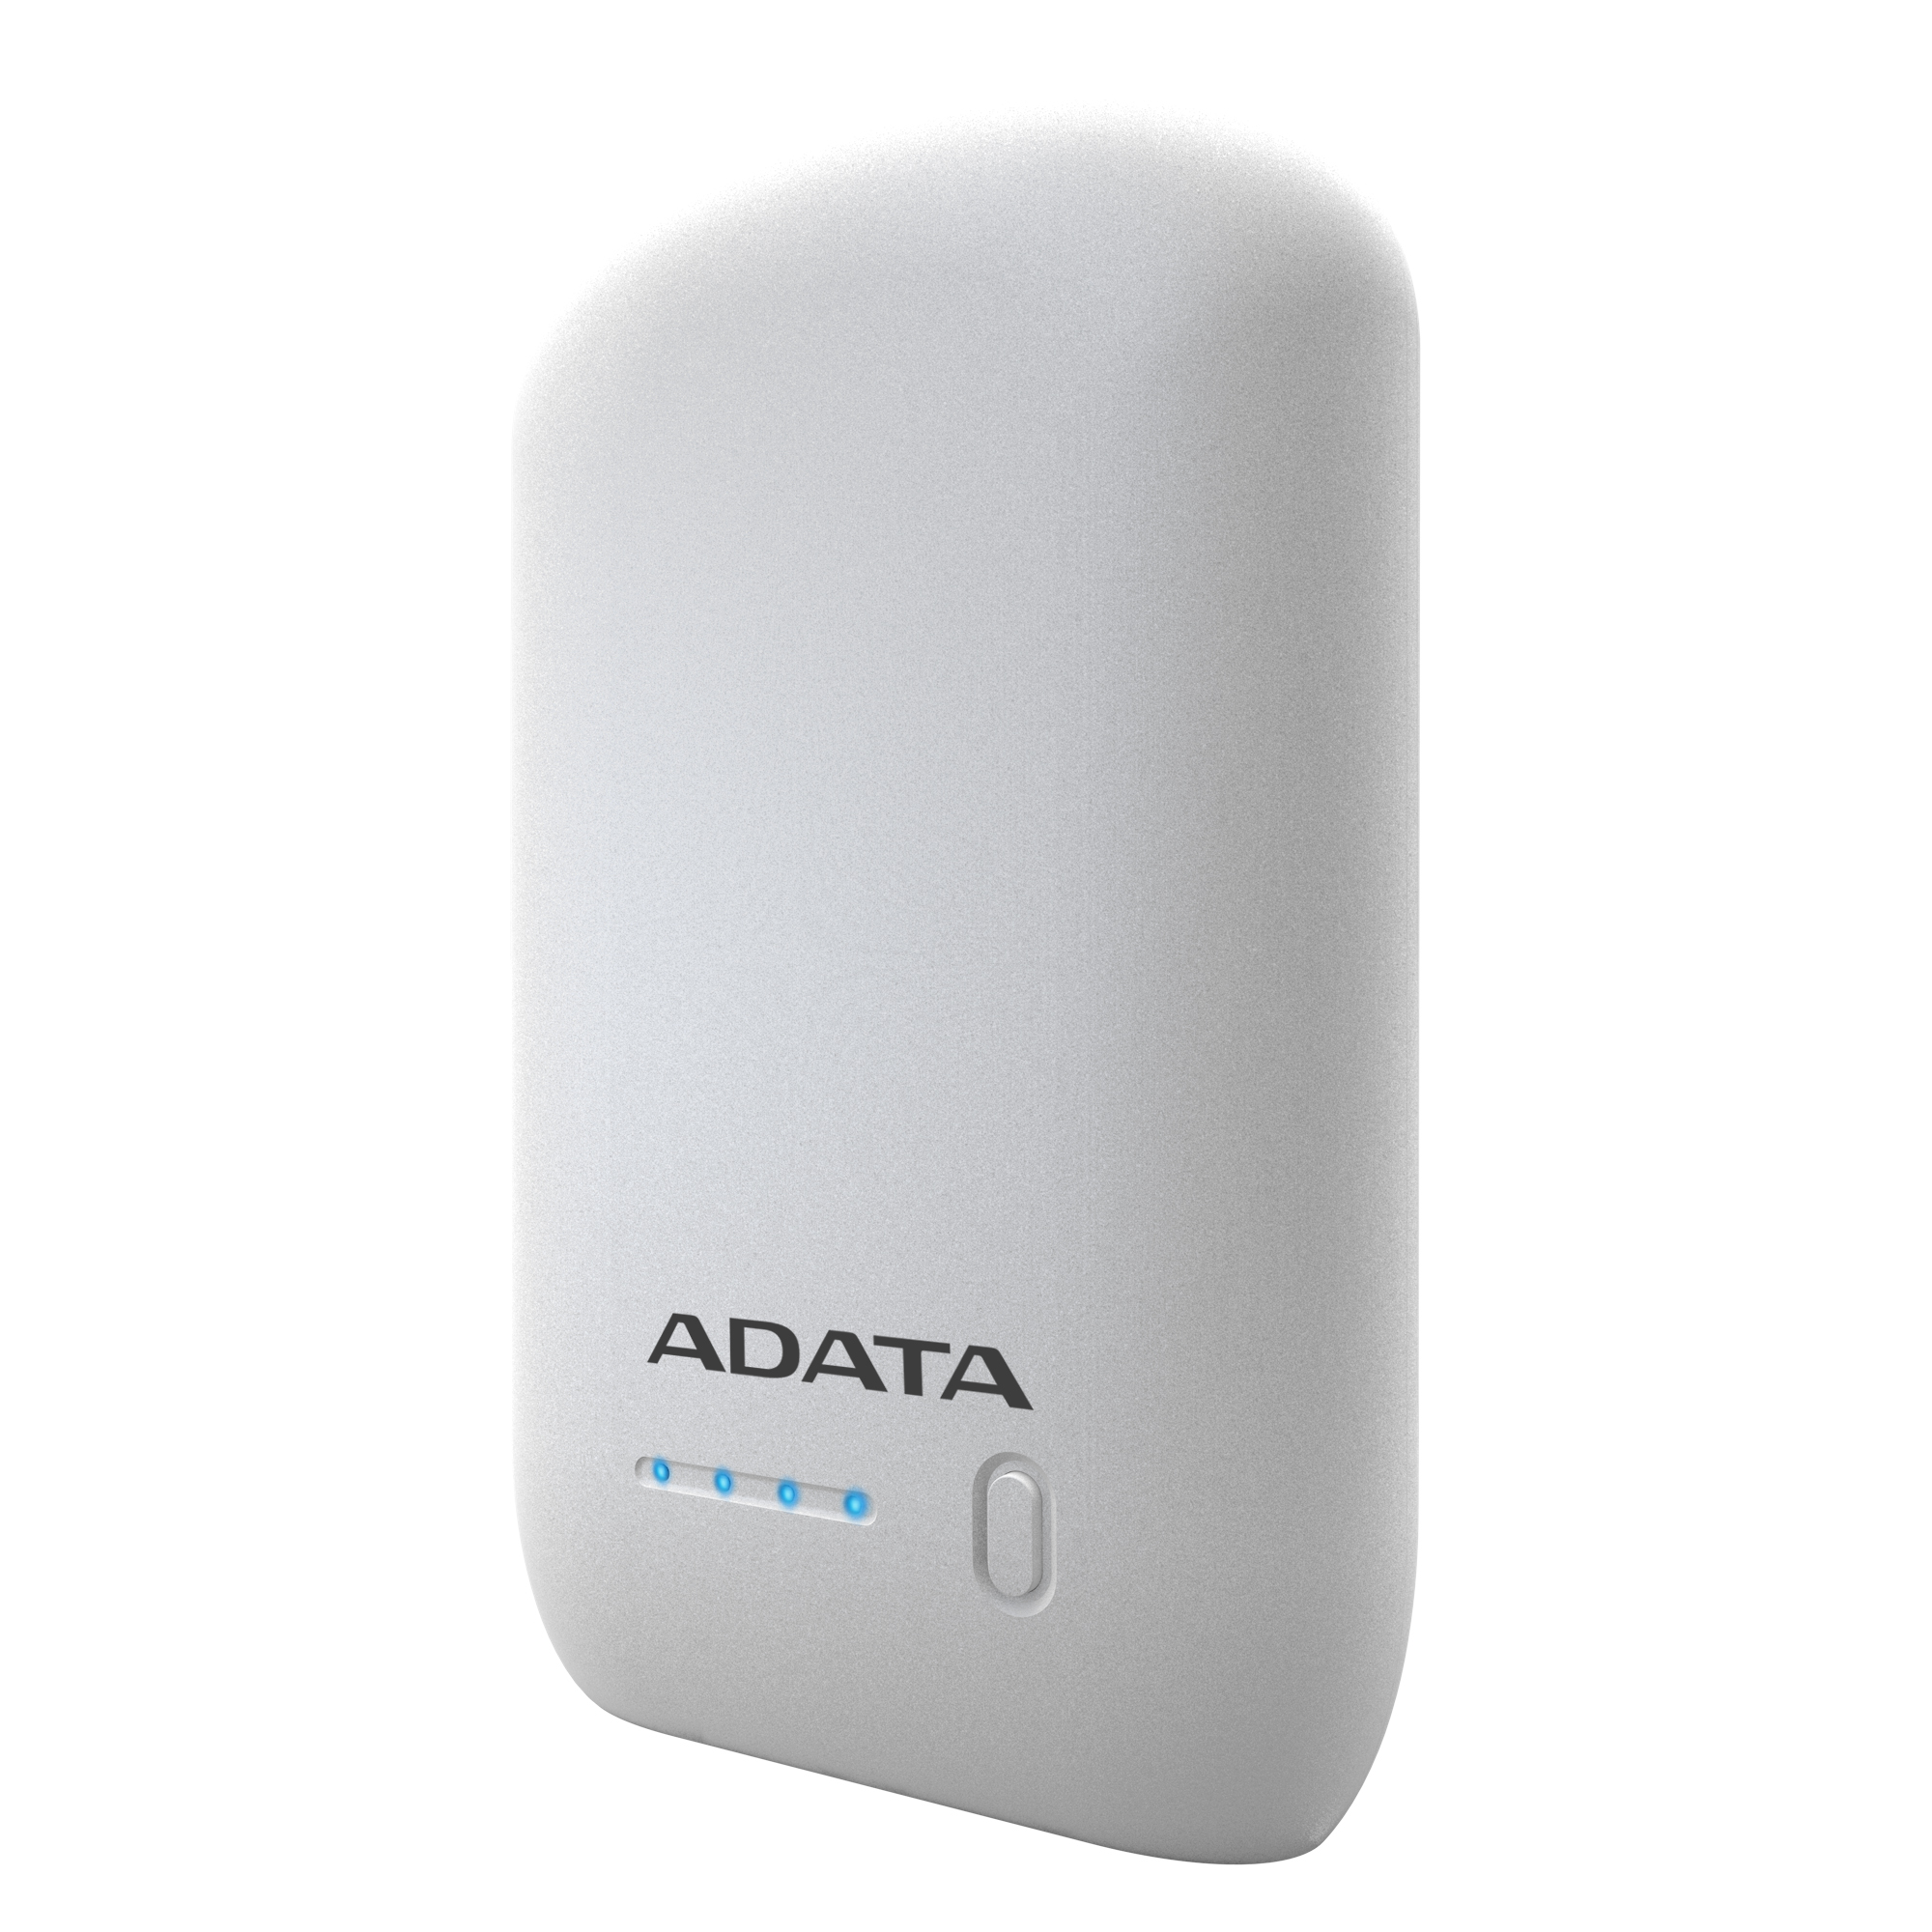 PowerBank ADATA P10050 10050mAh, white